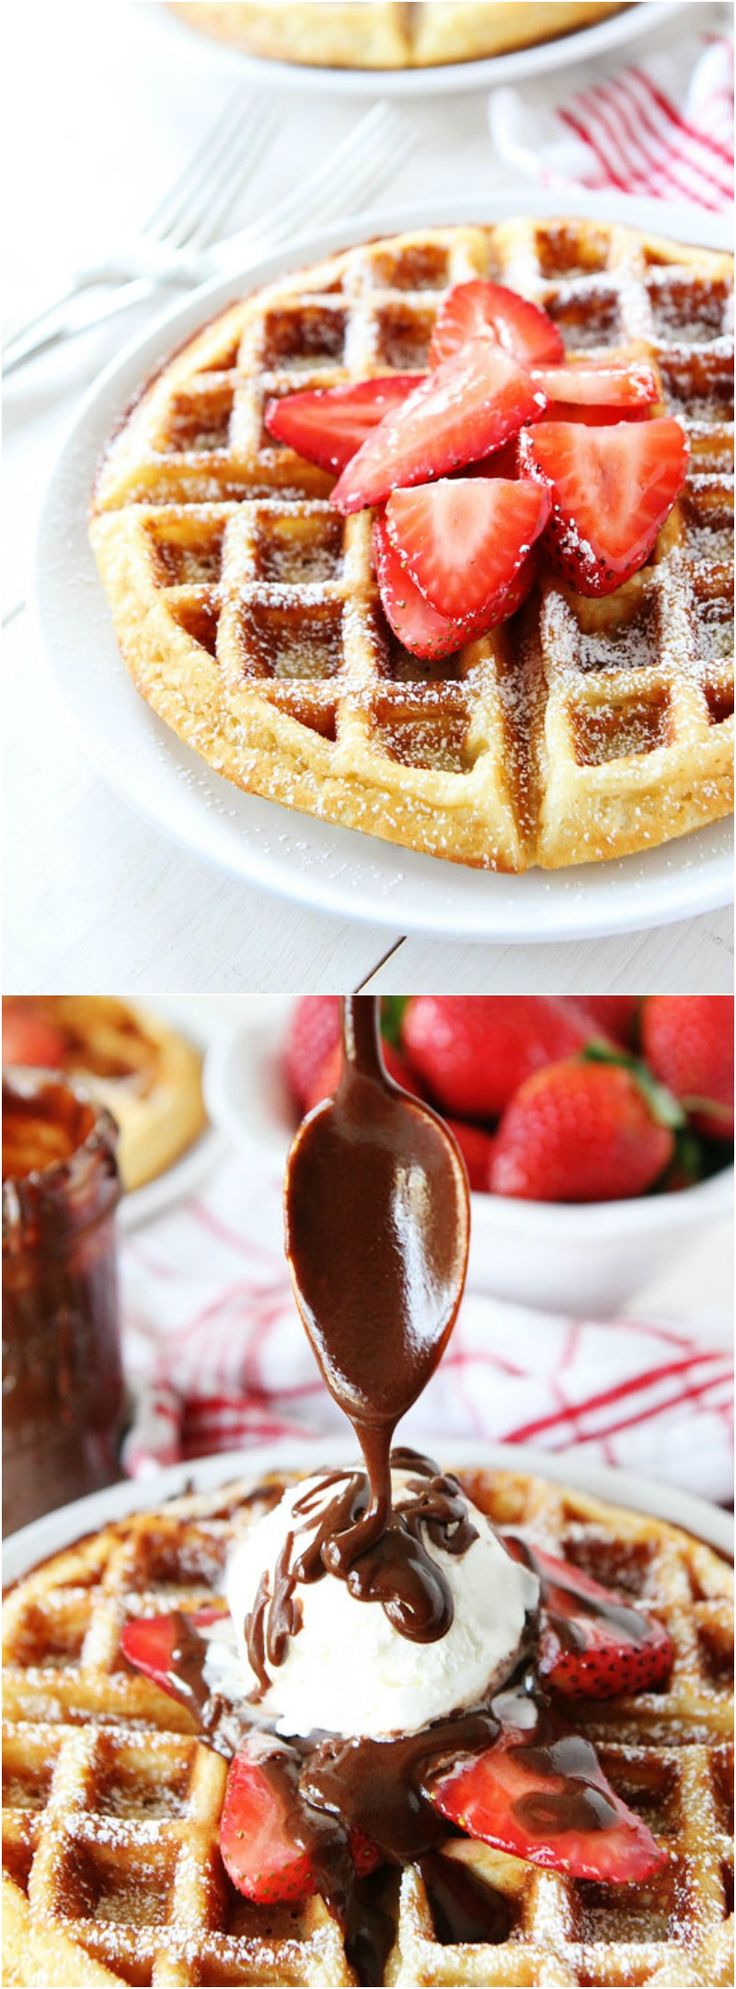 Yeasted Belgian Waffles Recipe on twopeasandtheirpod.com Great for breakfast or topped with ice cream and hot fudge for dessert!